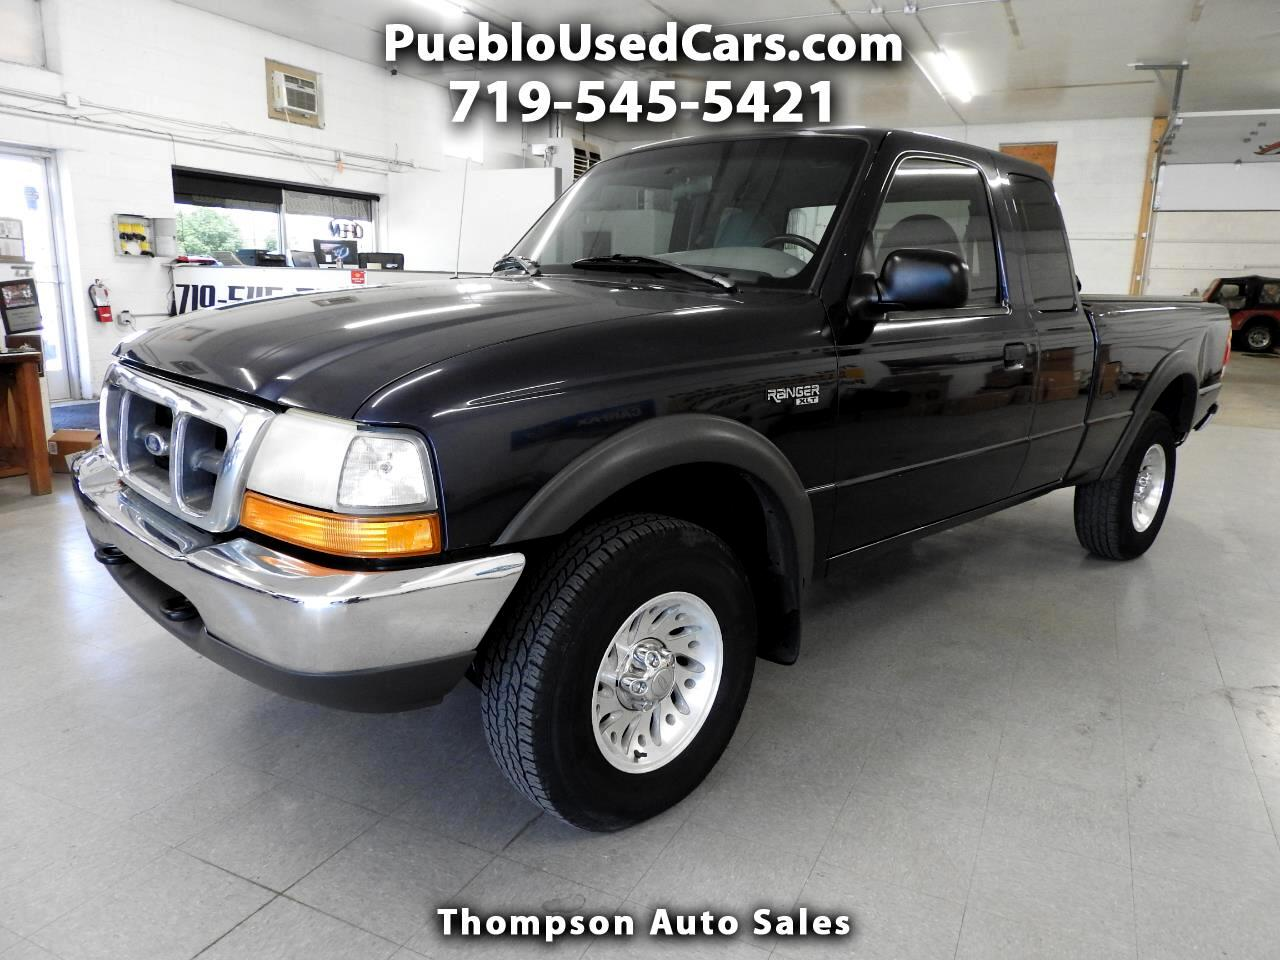 1999 Ford Ranger XLT SuperCab 4 Door 4WD